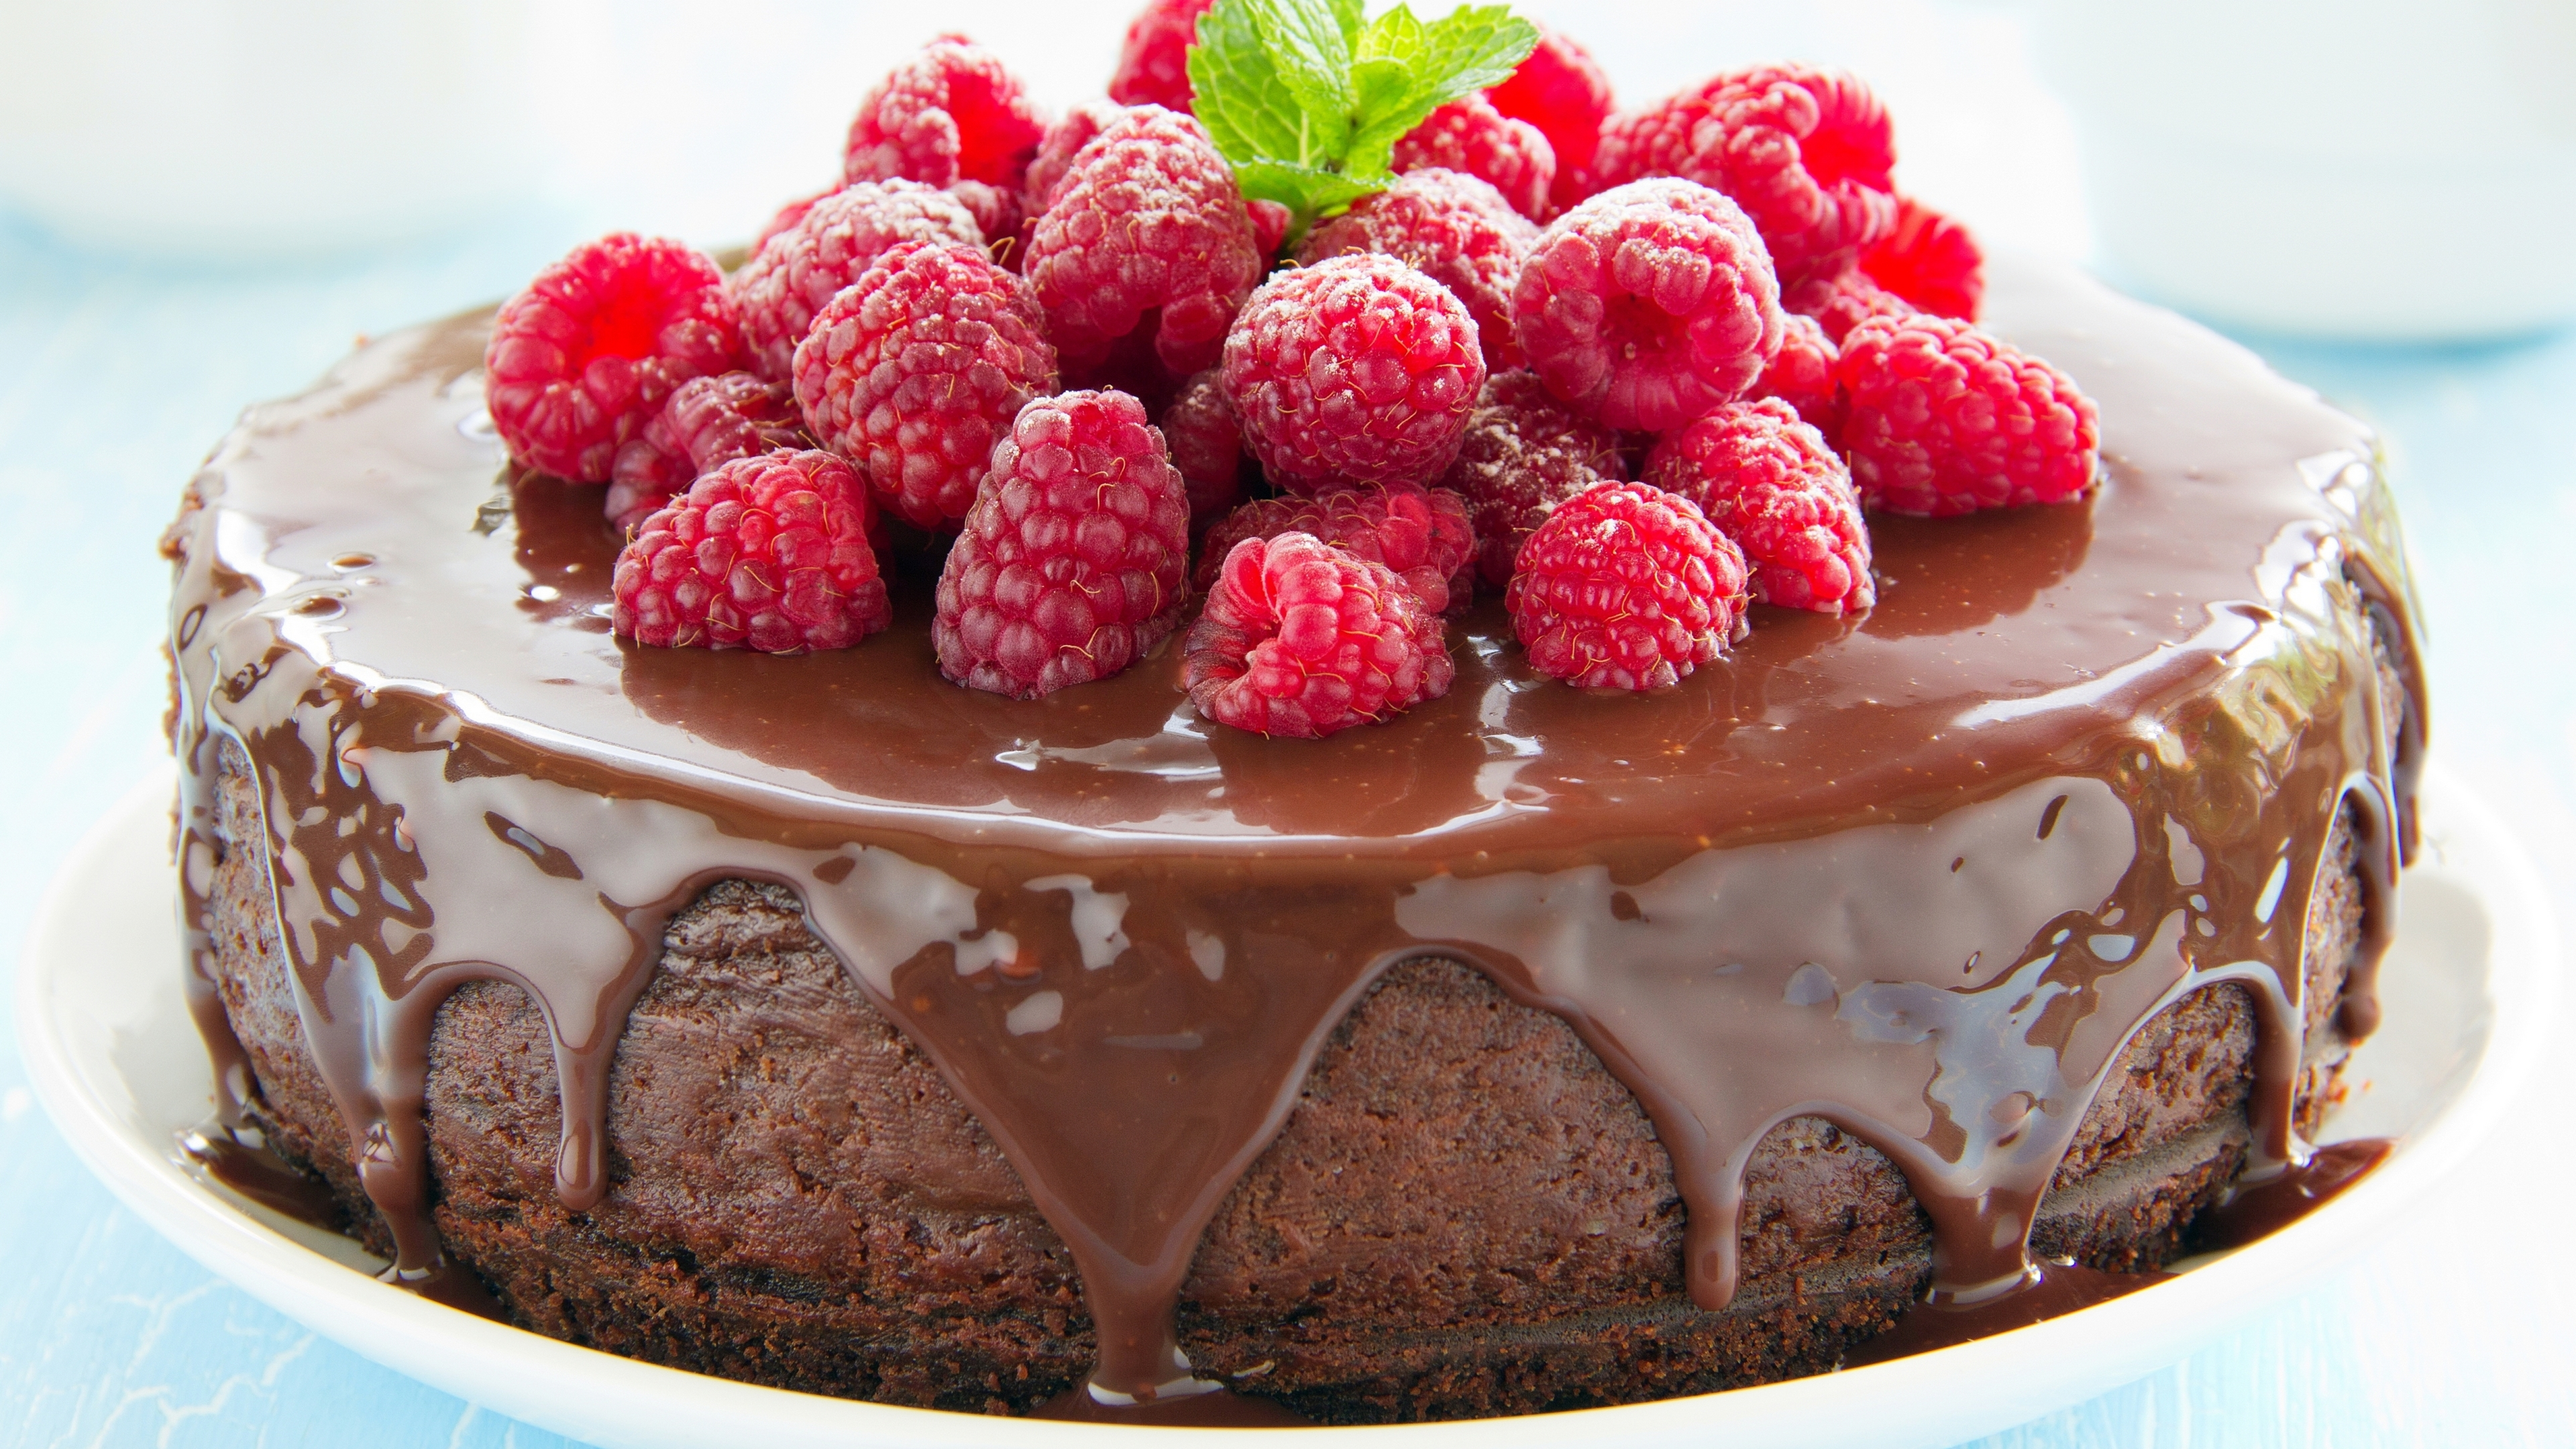 Strawberry Chocolate Cake wallpaper